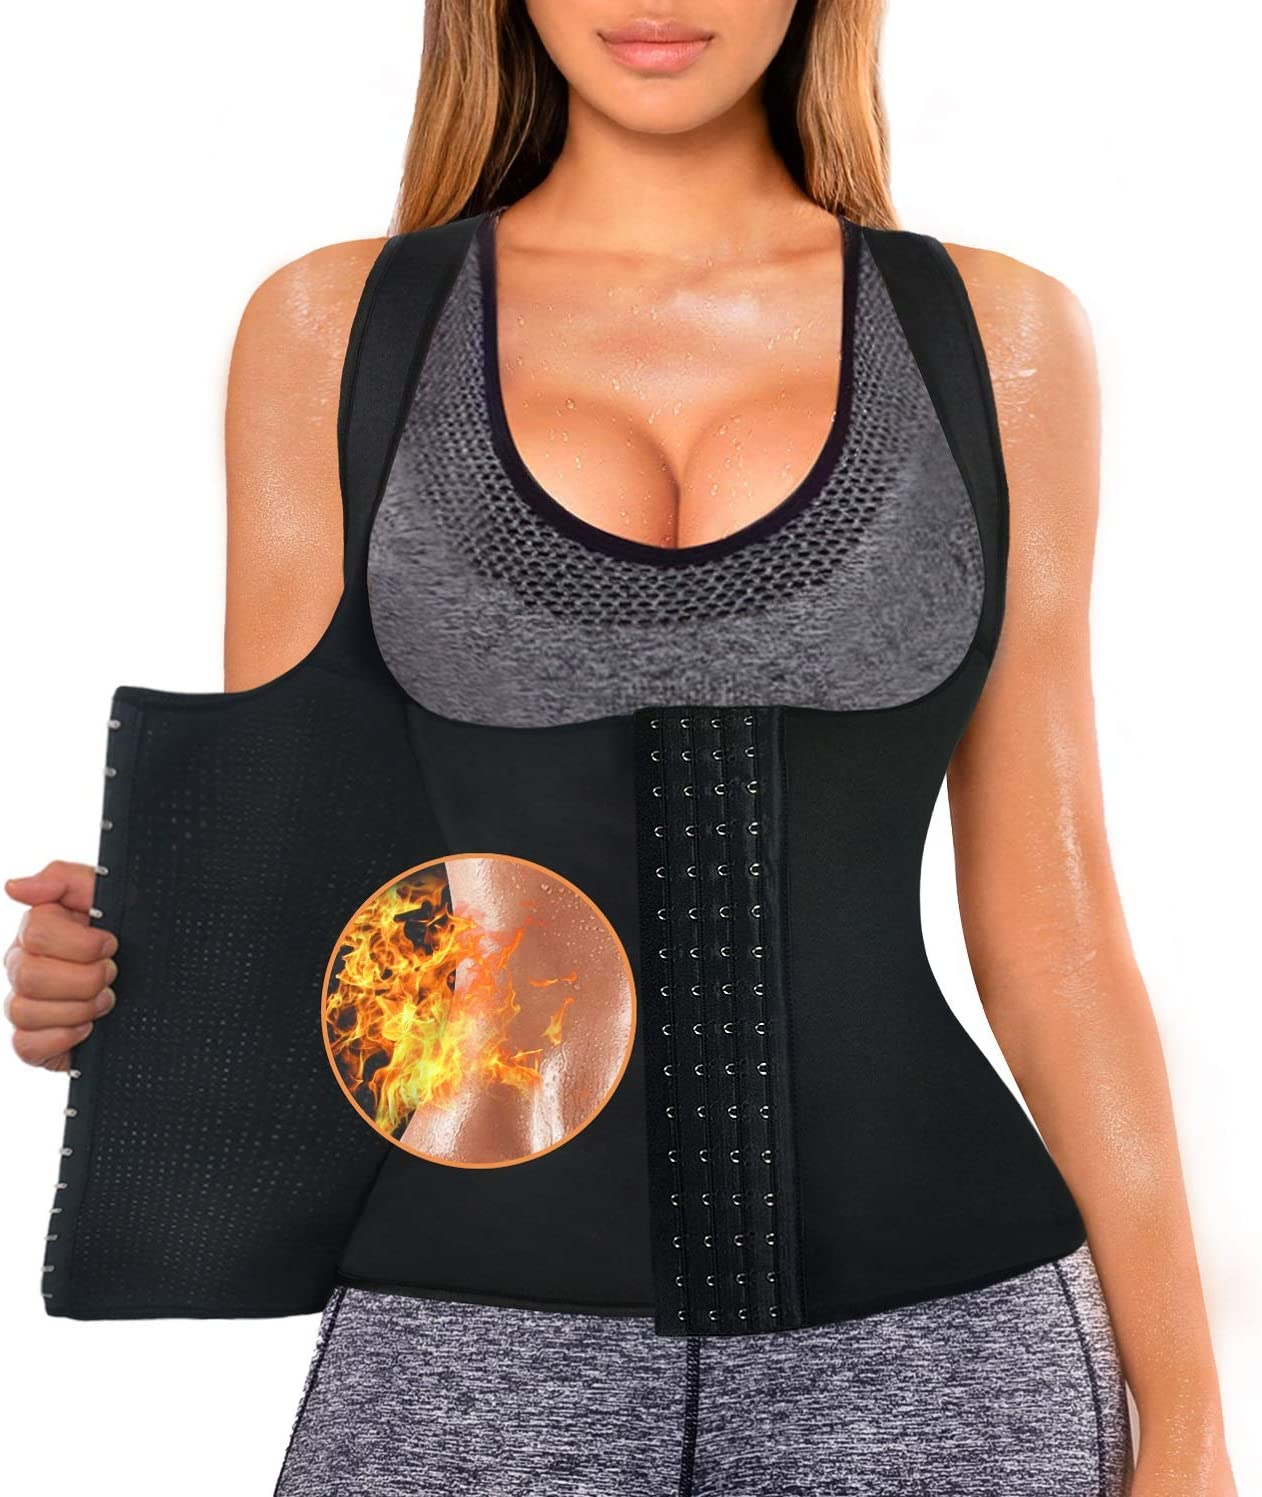 Sweat Waist Trainer Girdle Workout Sauna Tank Top Vest for Women Weight Loss Exercise Double Tummy Slimmer